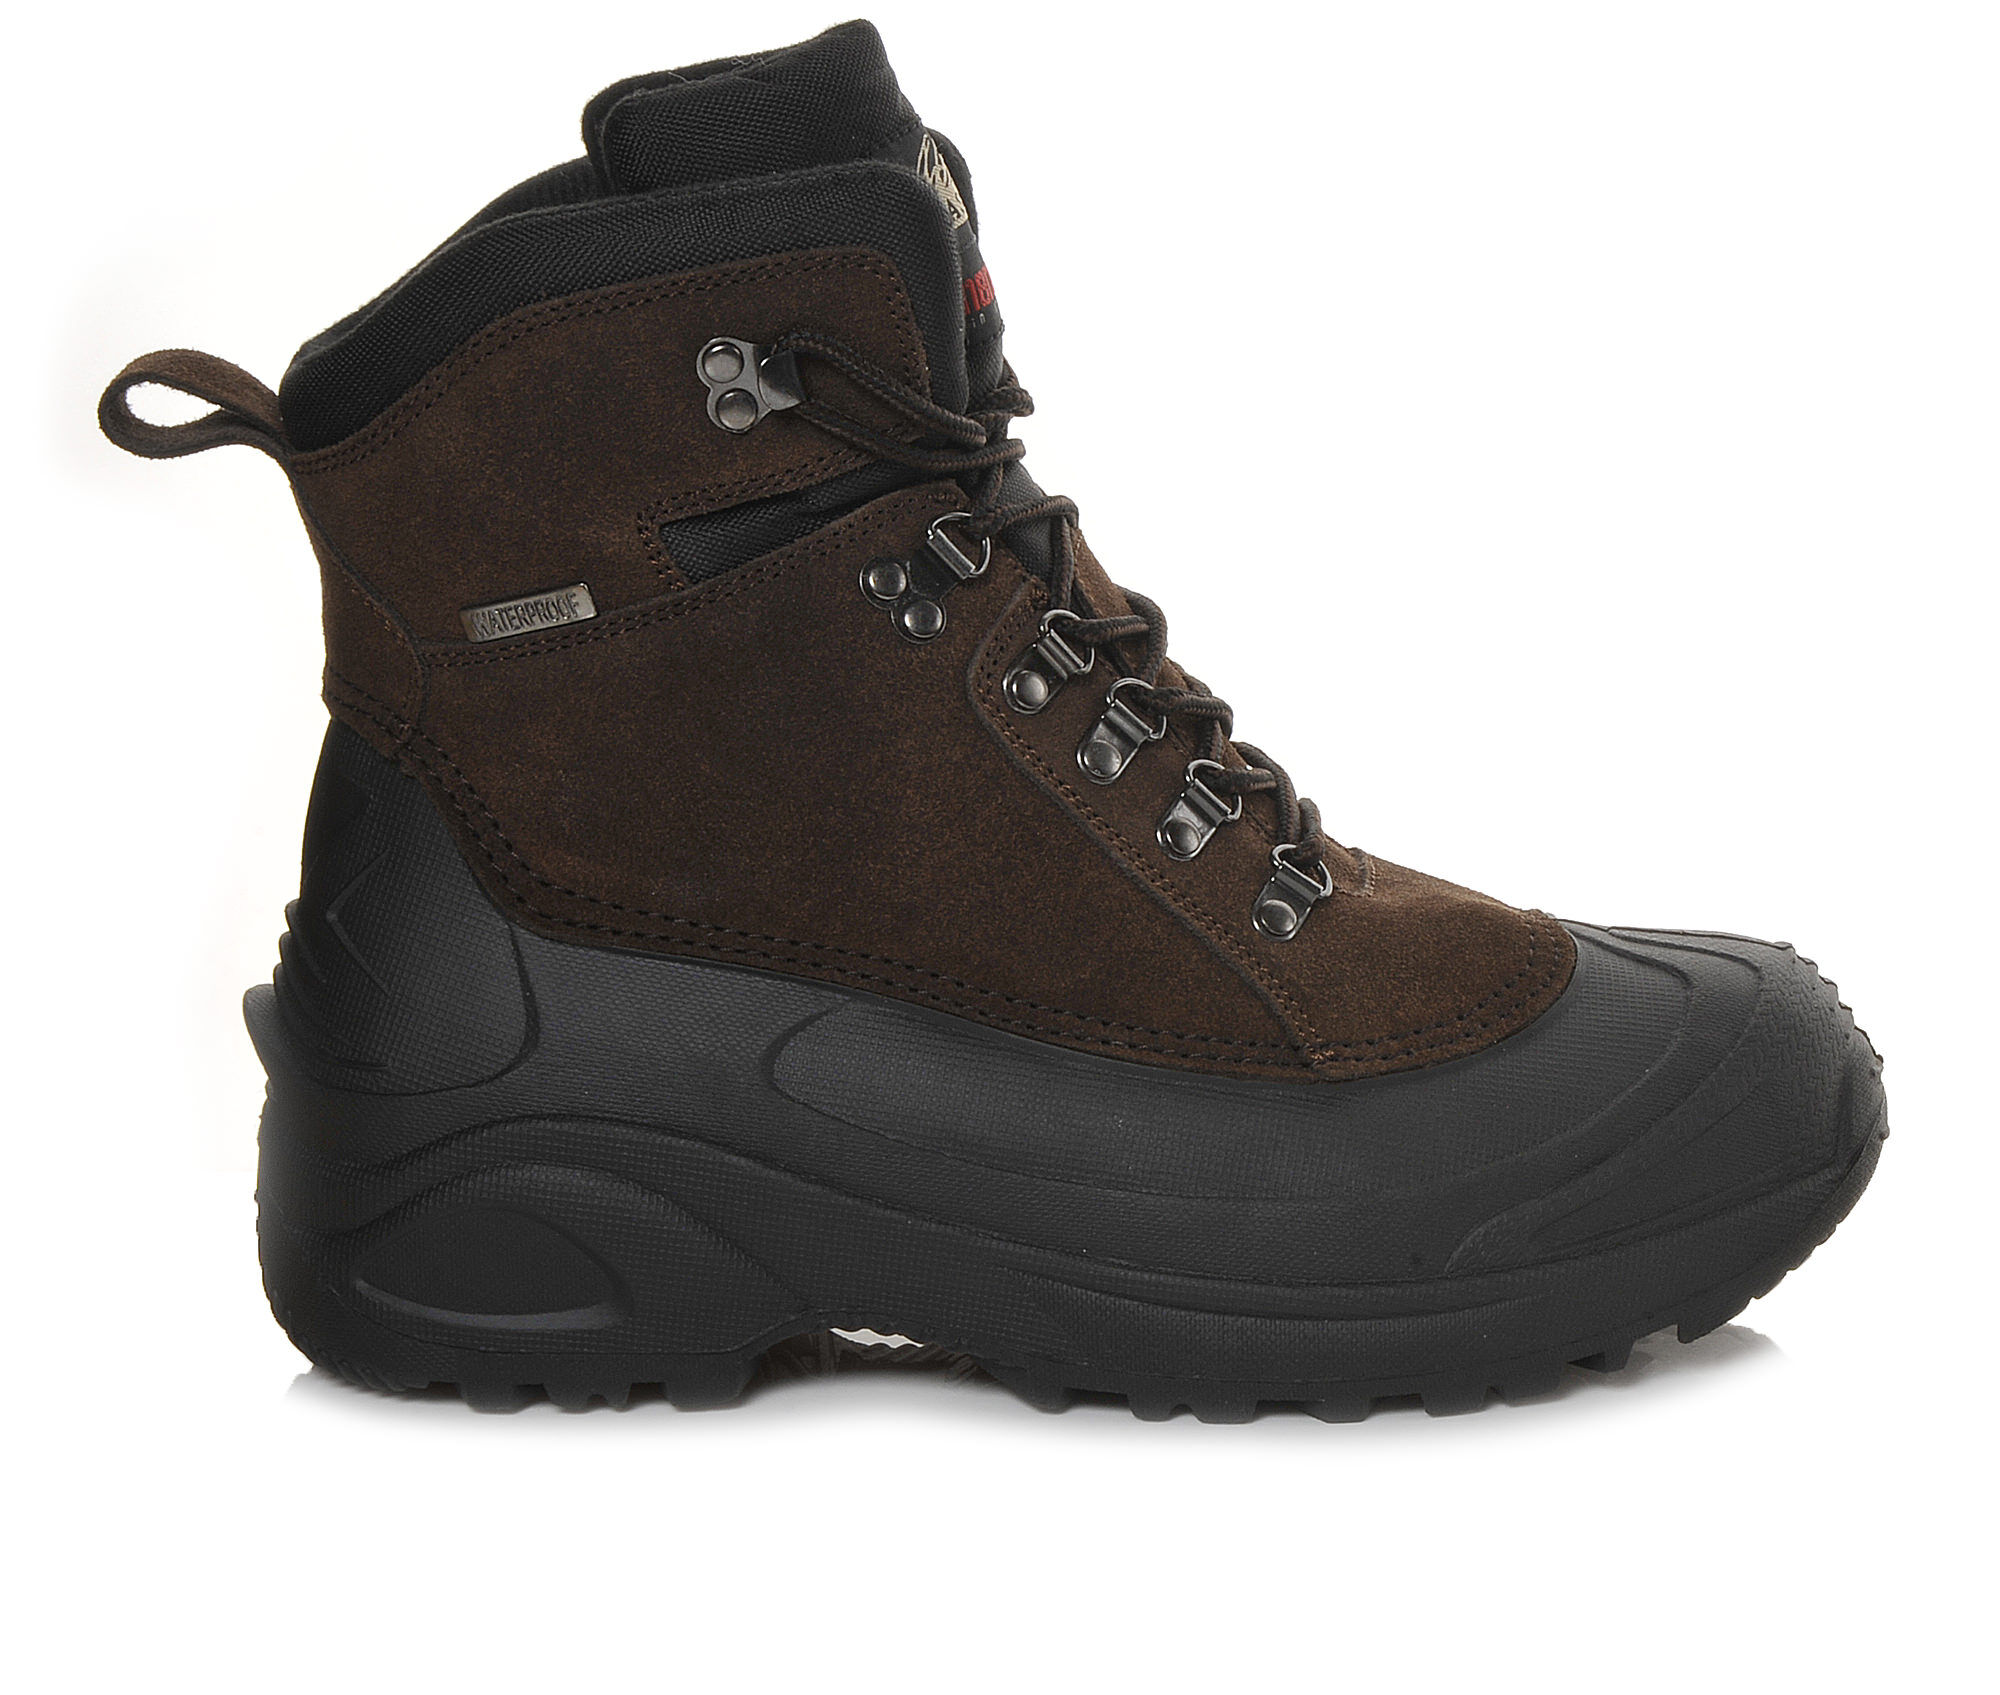 Itasca Sonoma Ice House Mens Boots Chocolate